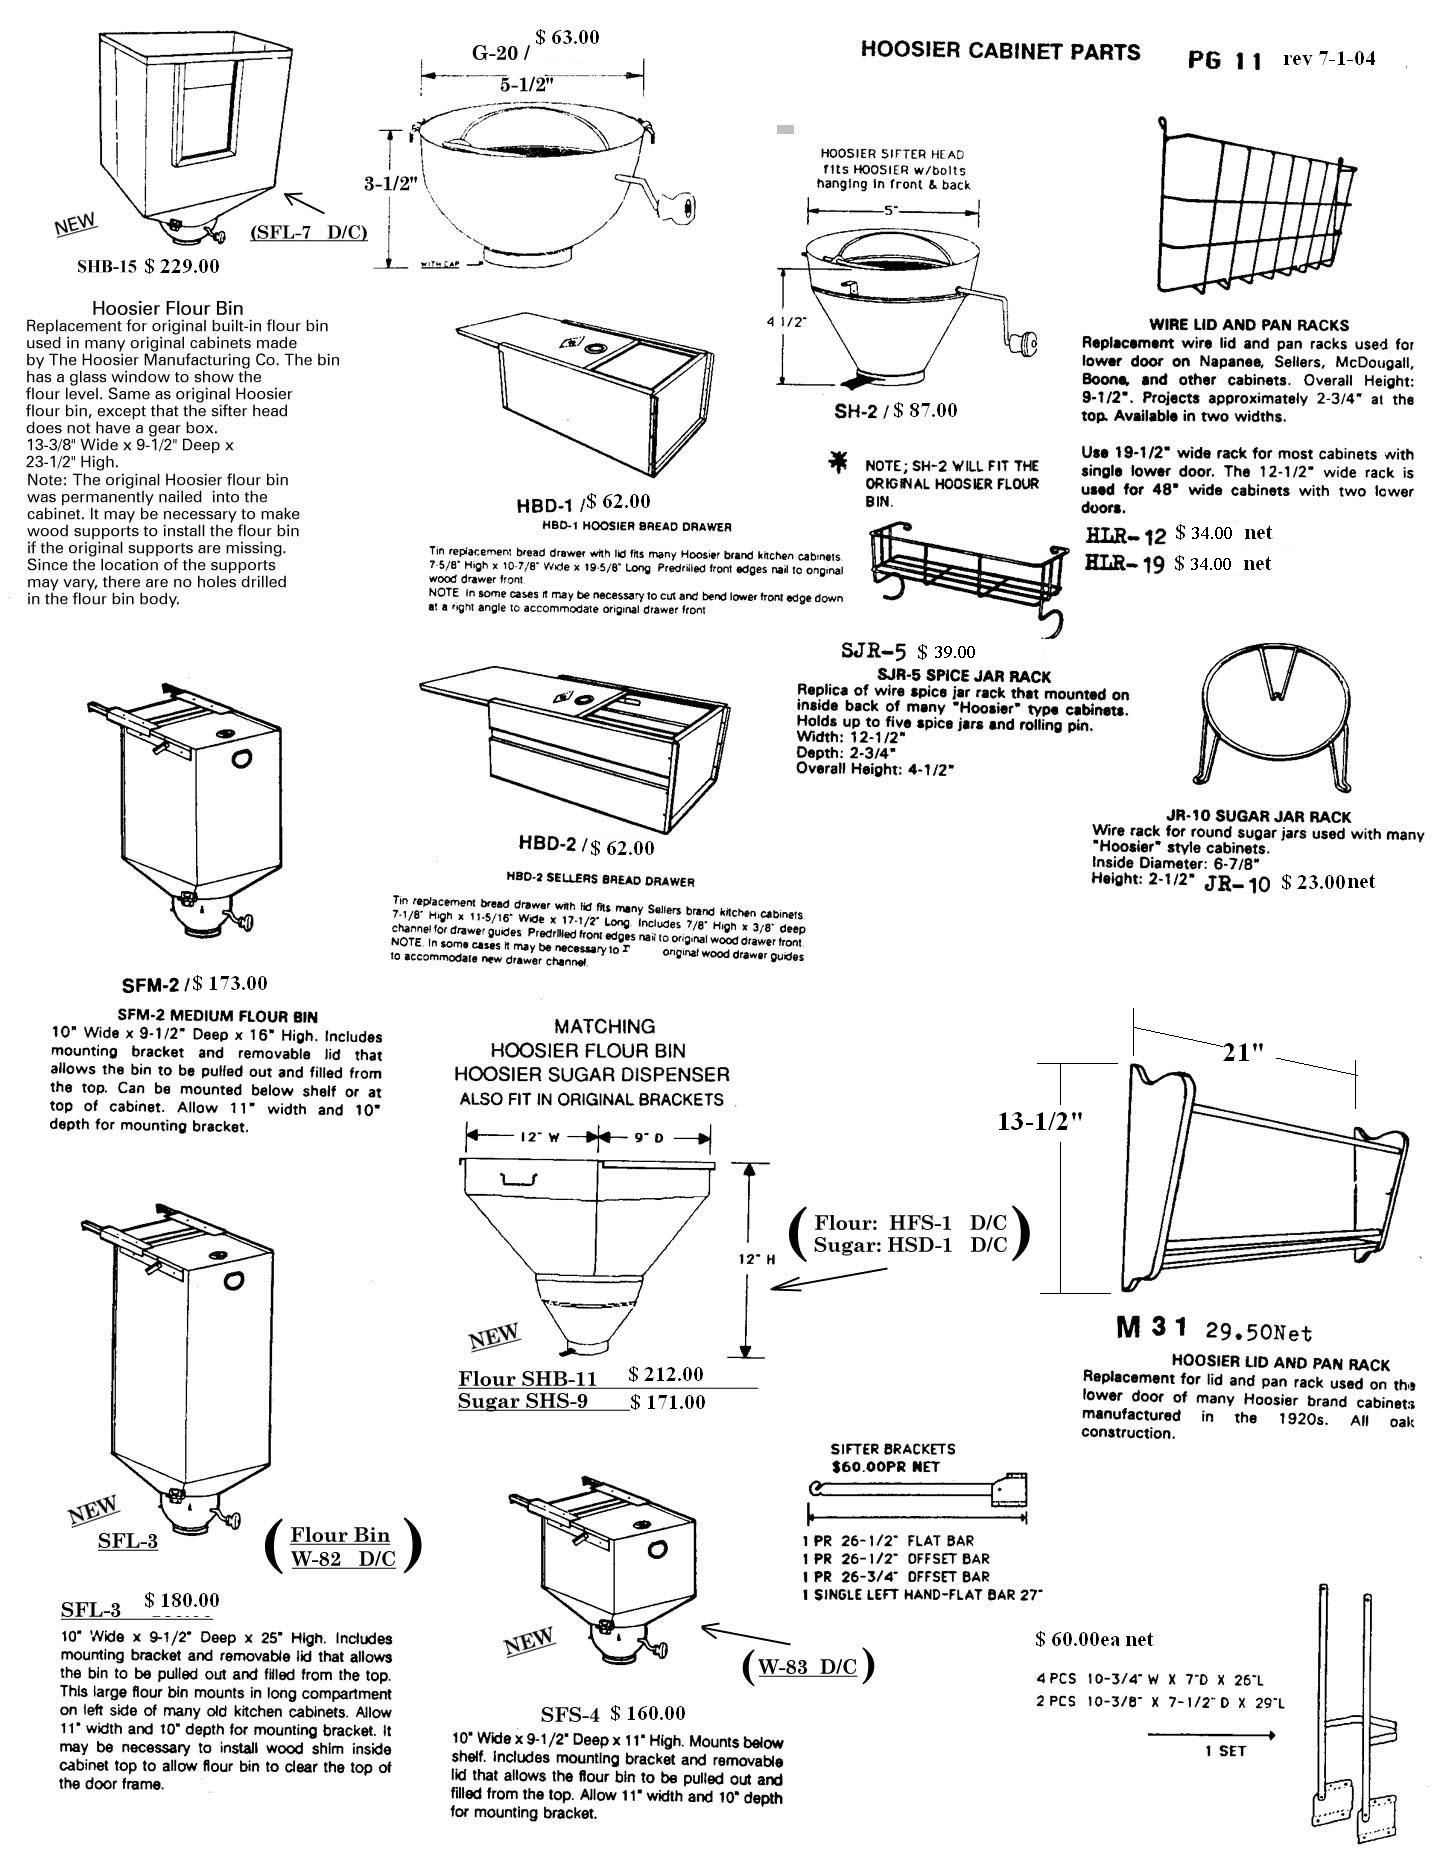 Sellers Hoosier Cabinet Replacement Parts | Page 11 - Sellers Hoosier Cabinet Replacement Parts Page 11 Hoosier